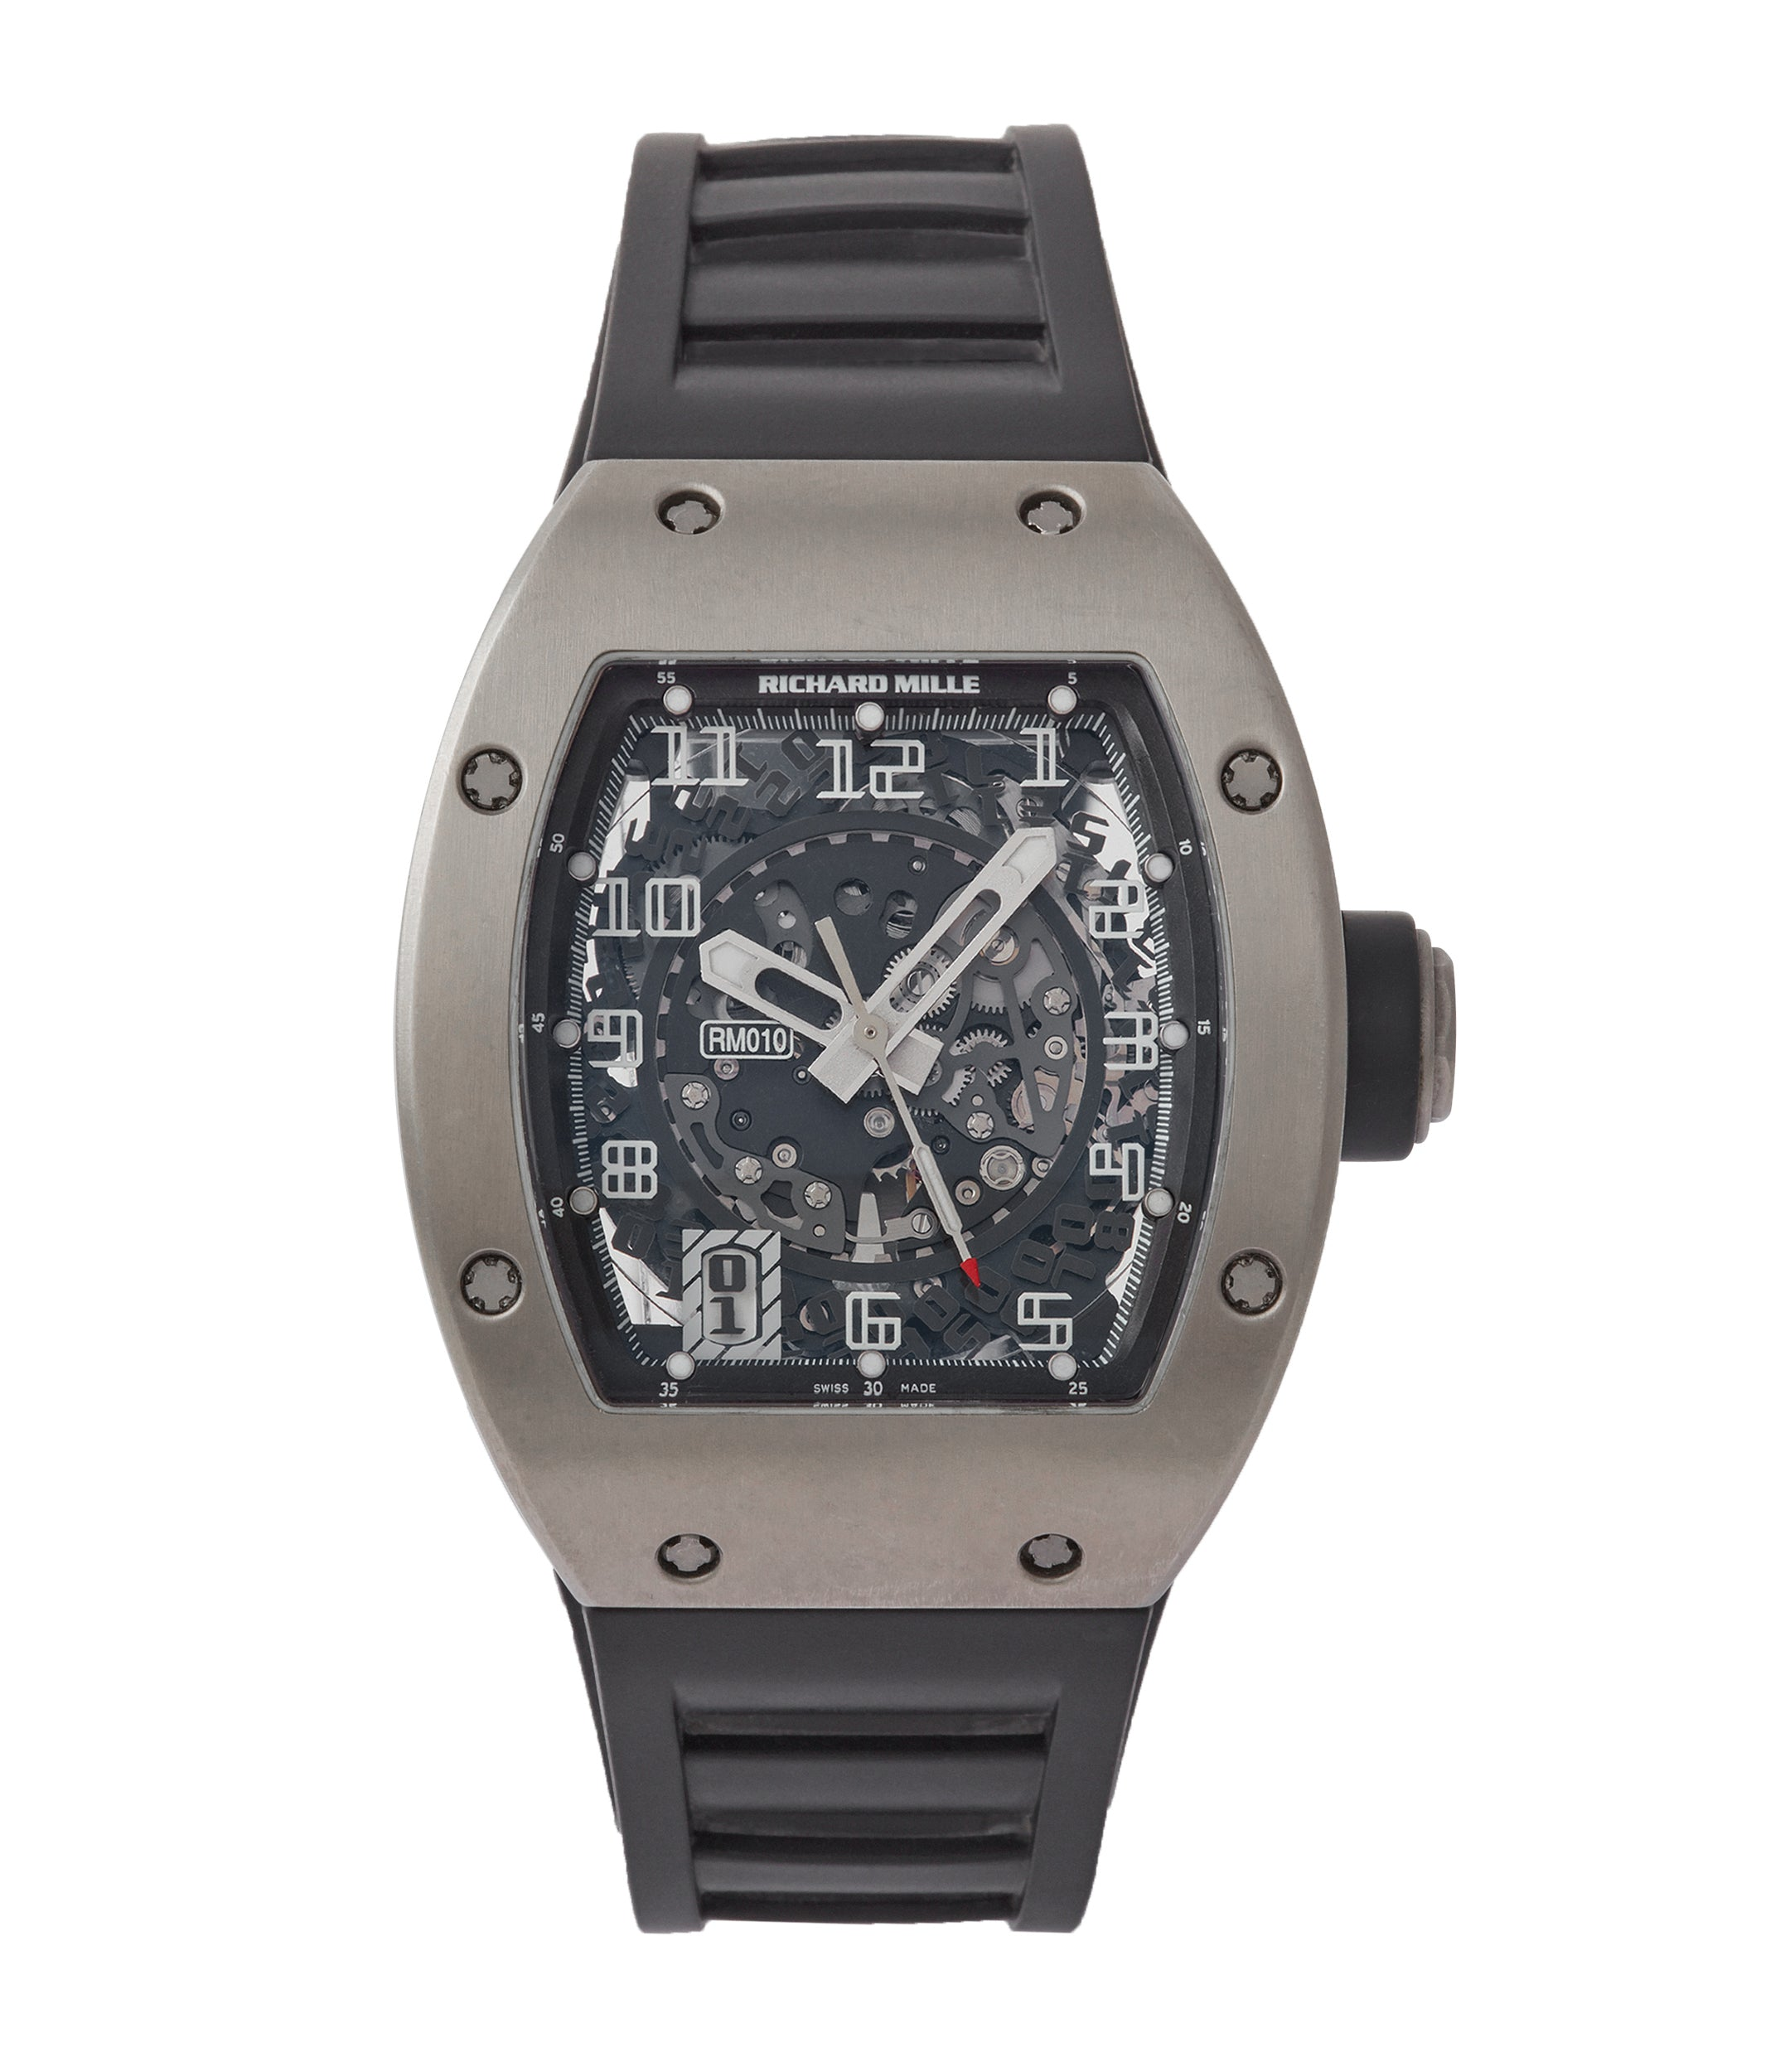 Richard Mille RM010 titanium men's sports luxury wristwatch for sale online A Collected Man London UK specialist rare independent watchmakers